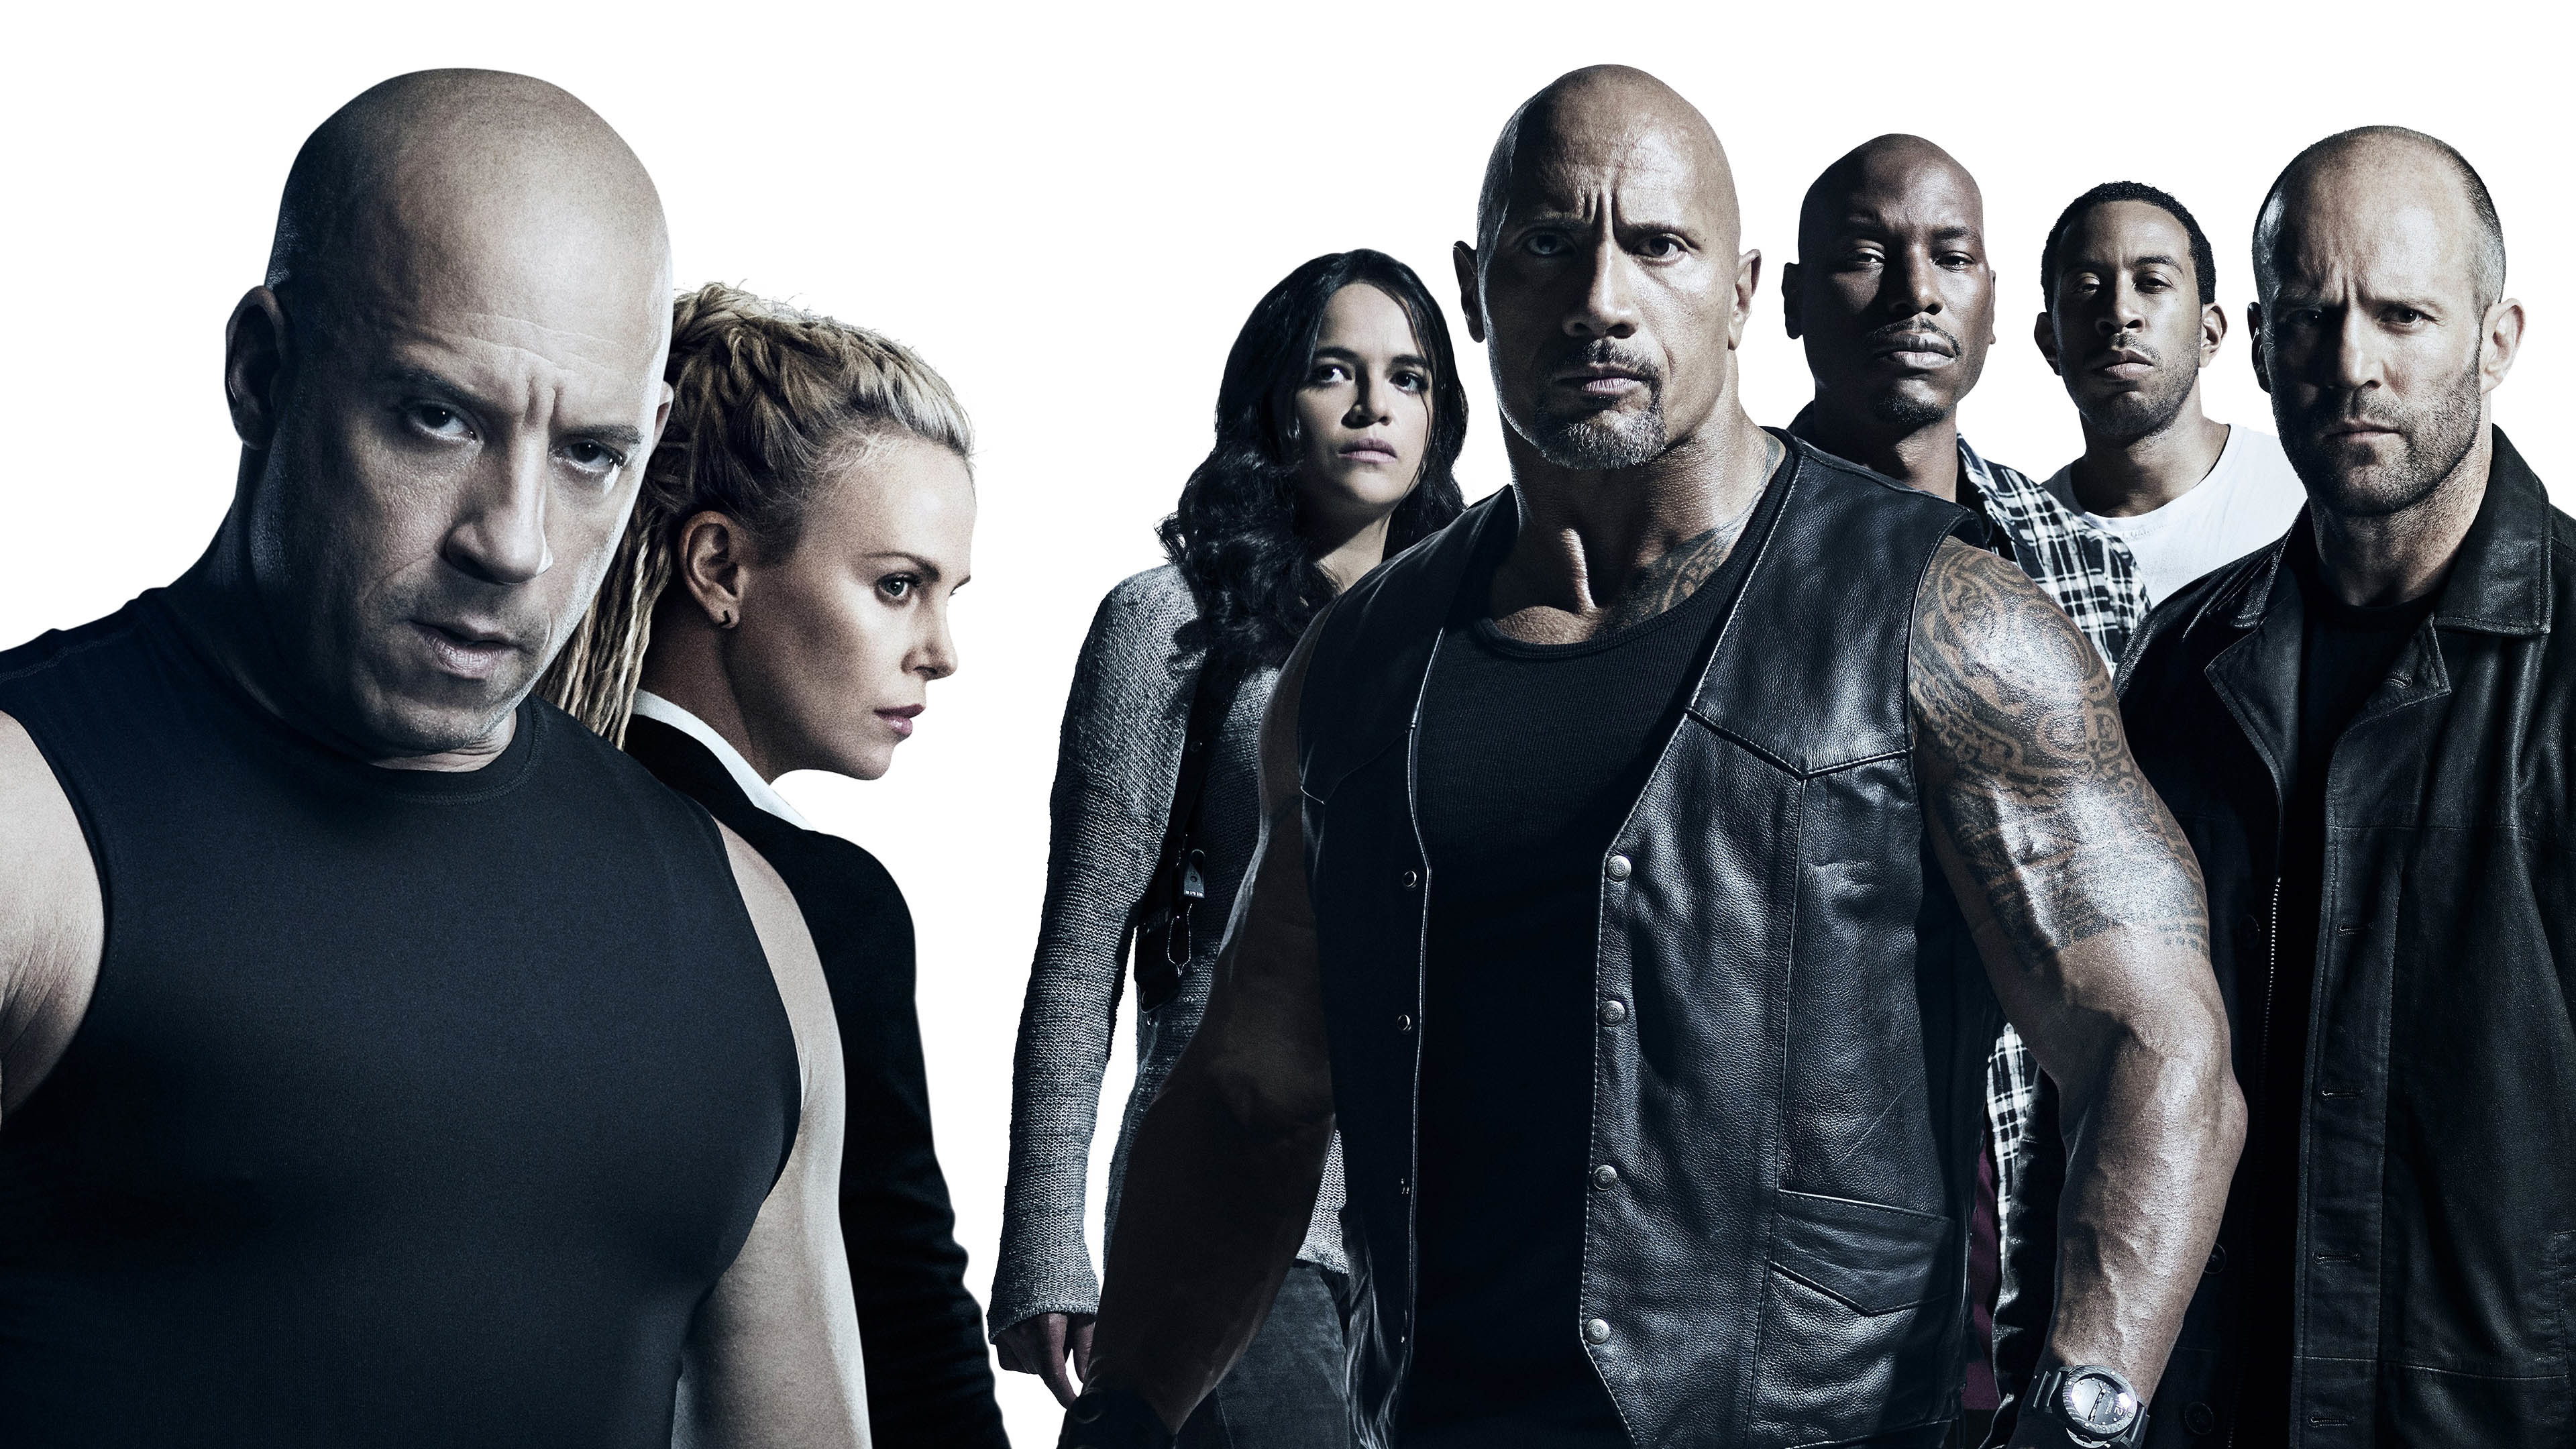 1920x1080 Fast And Furious 7 Wallpaper 46667